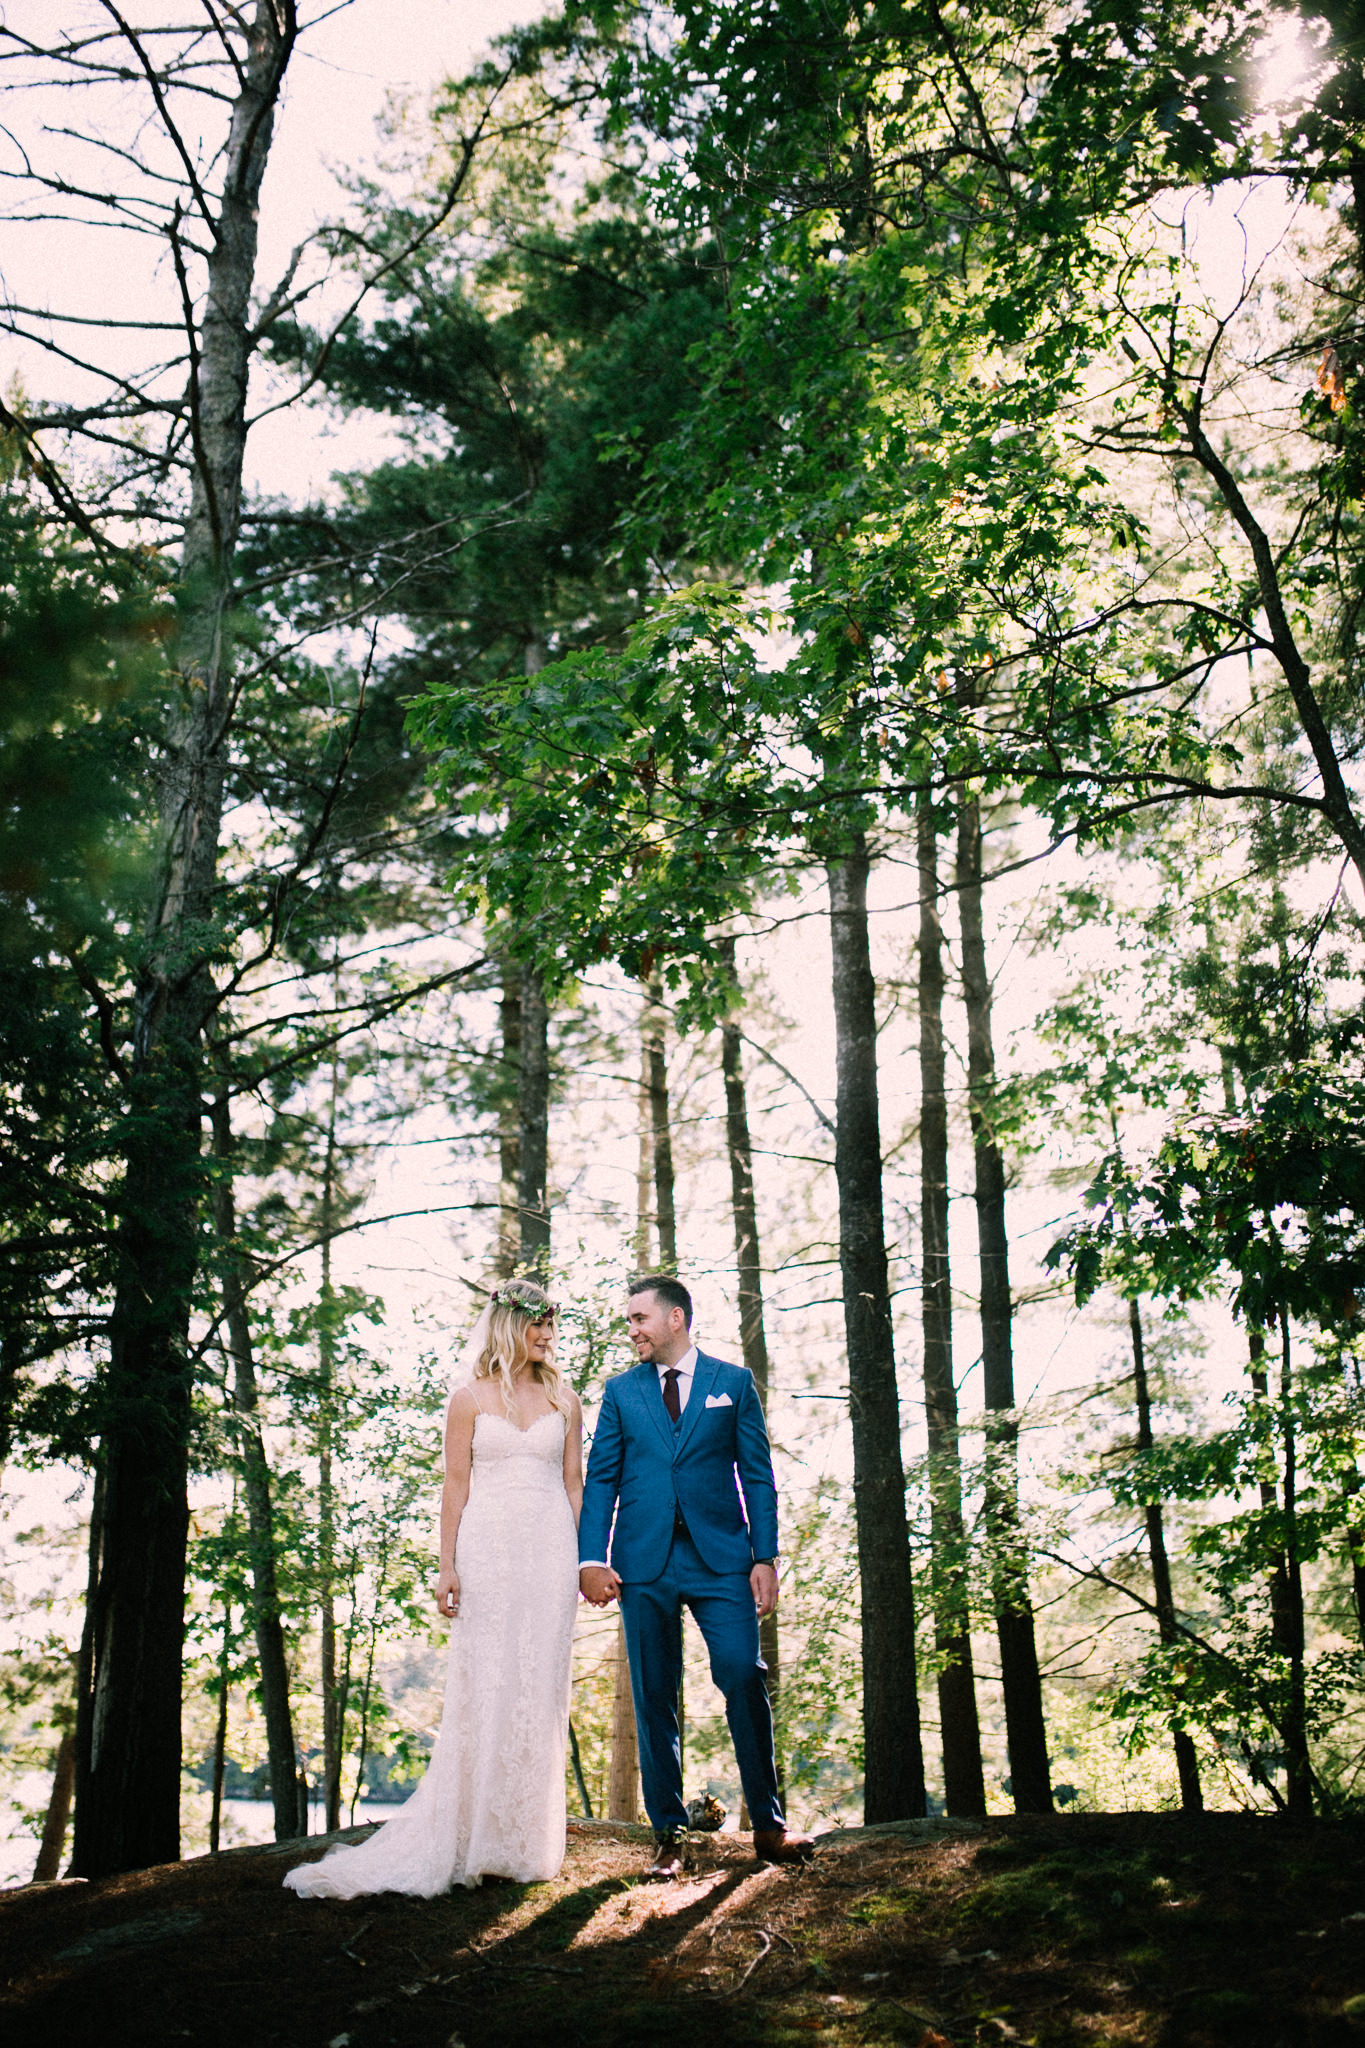 Muskoka lakeside wedding at Port Cunnington Lodge by Max Wong Photo (22)